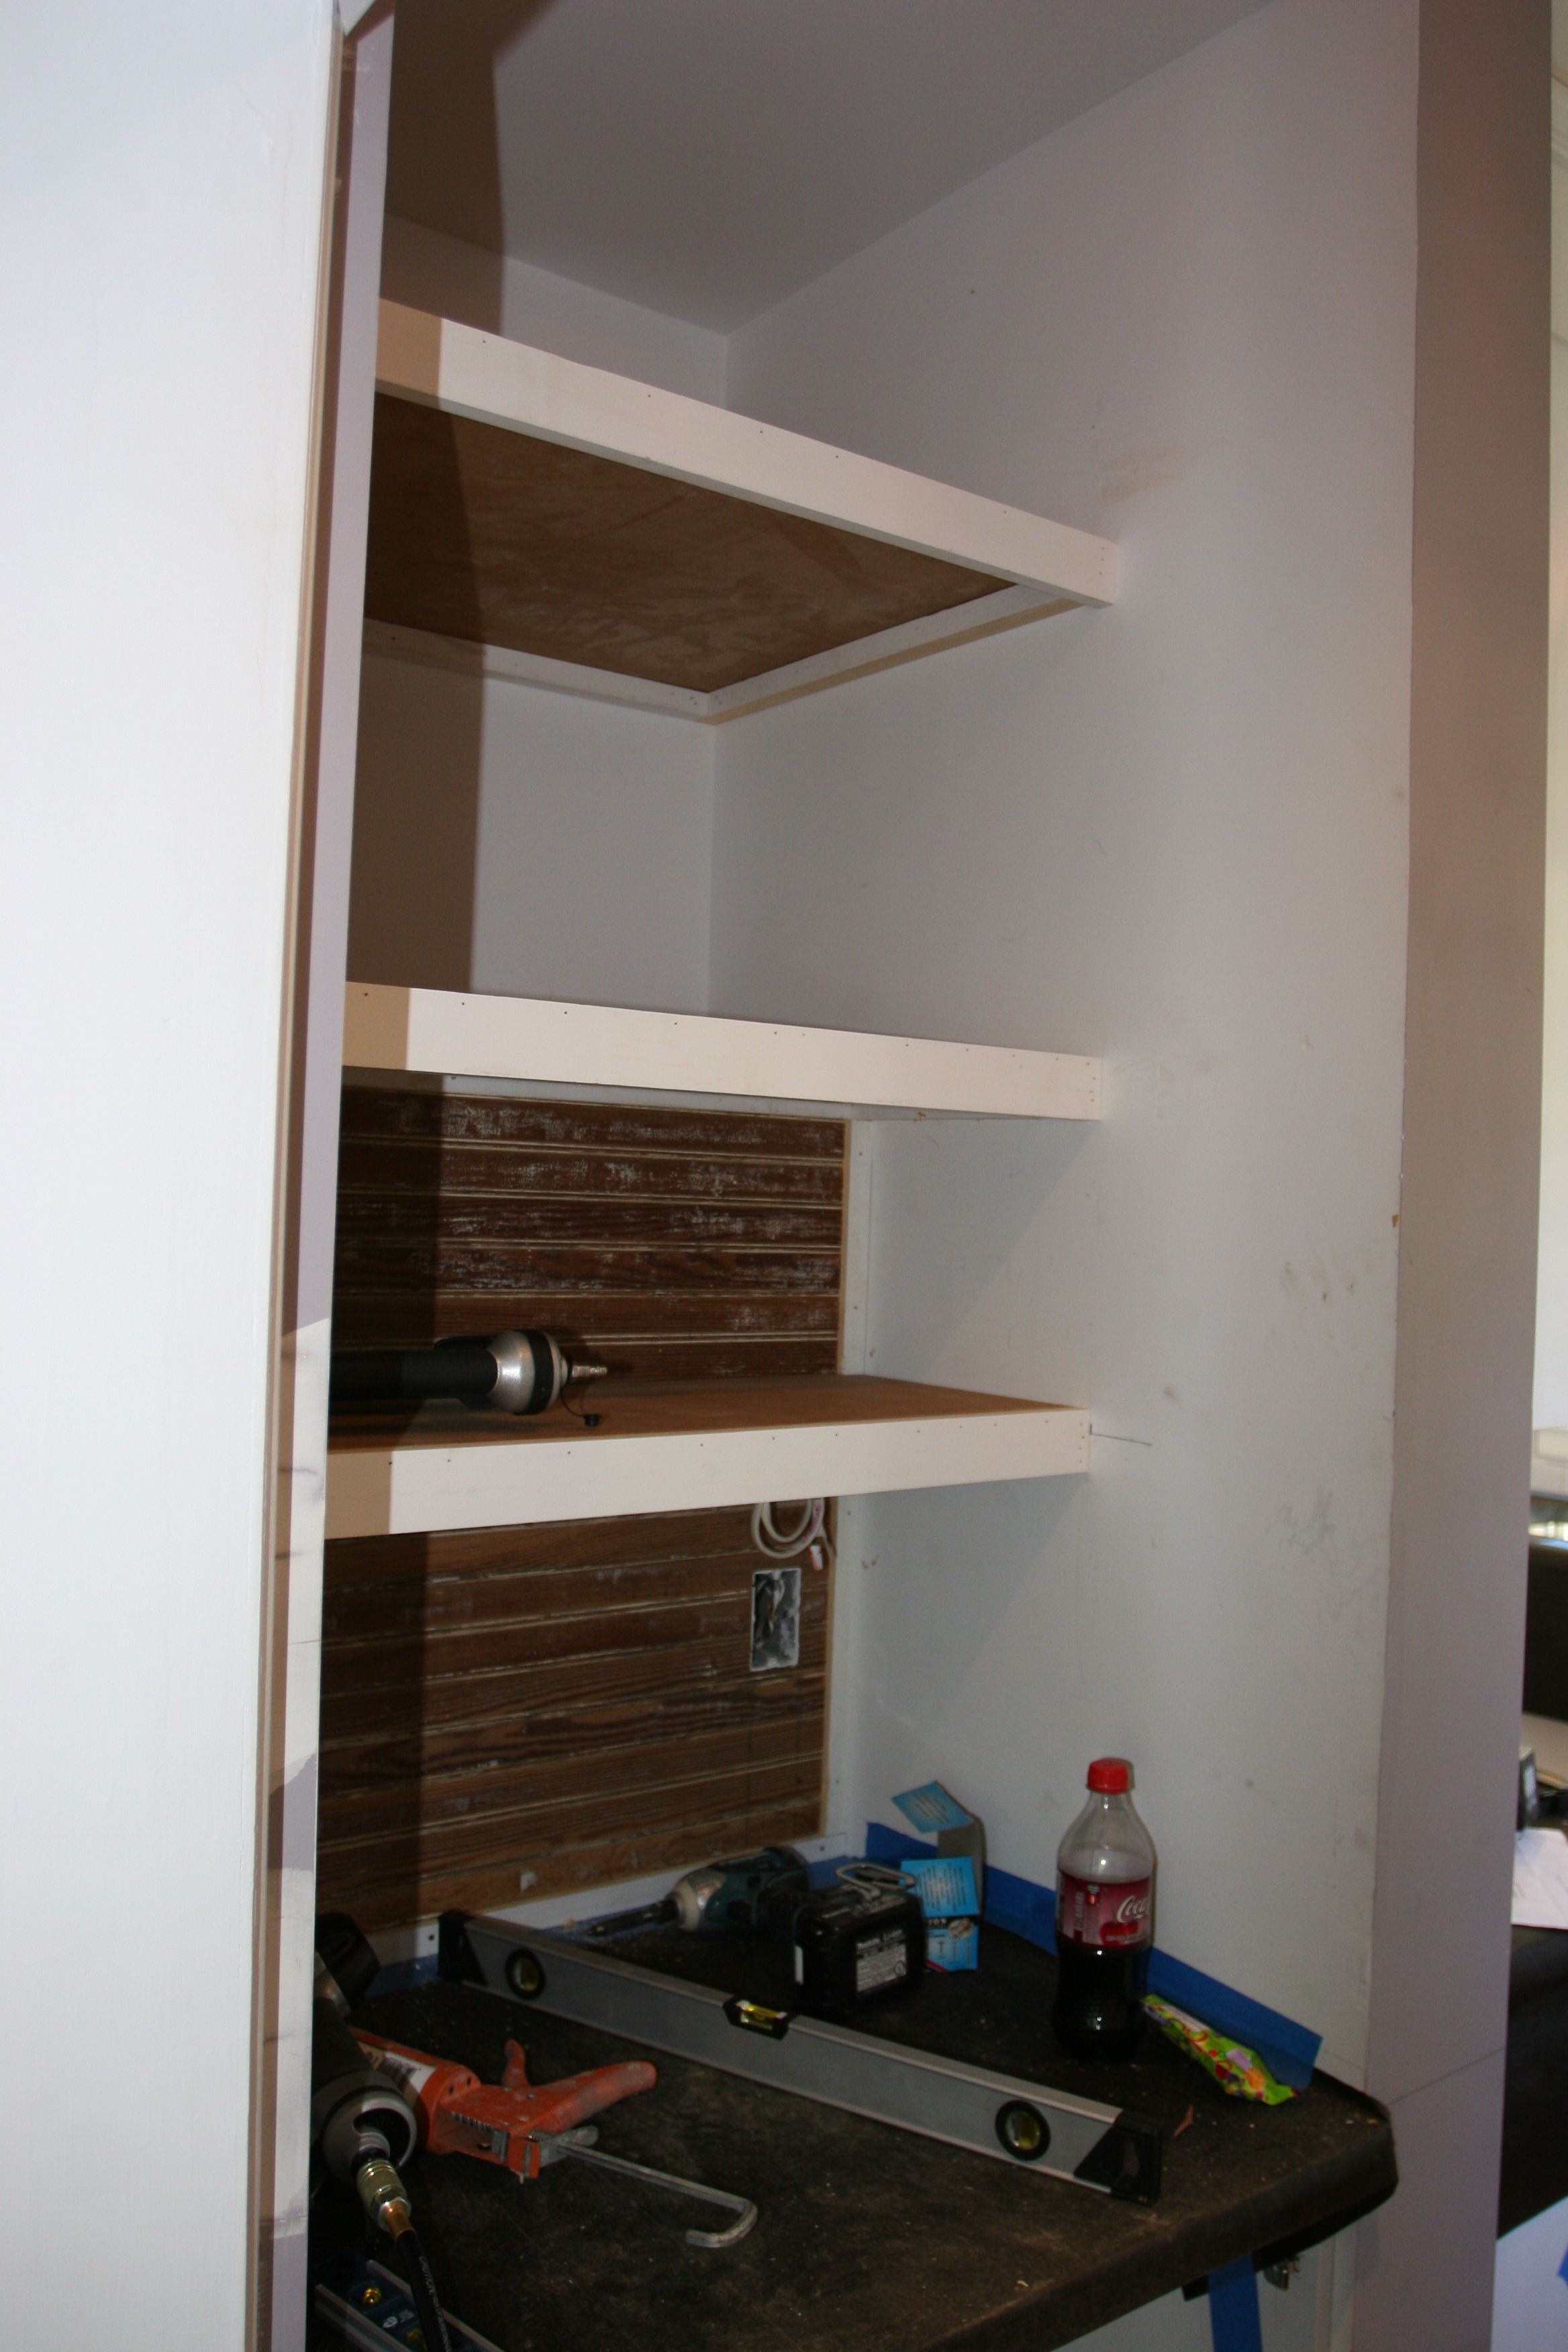 And another shelf! Storage aplenty!